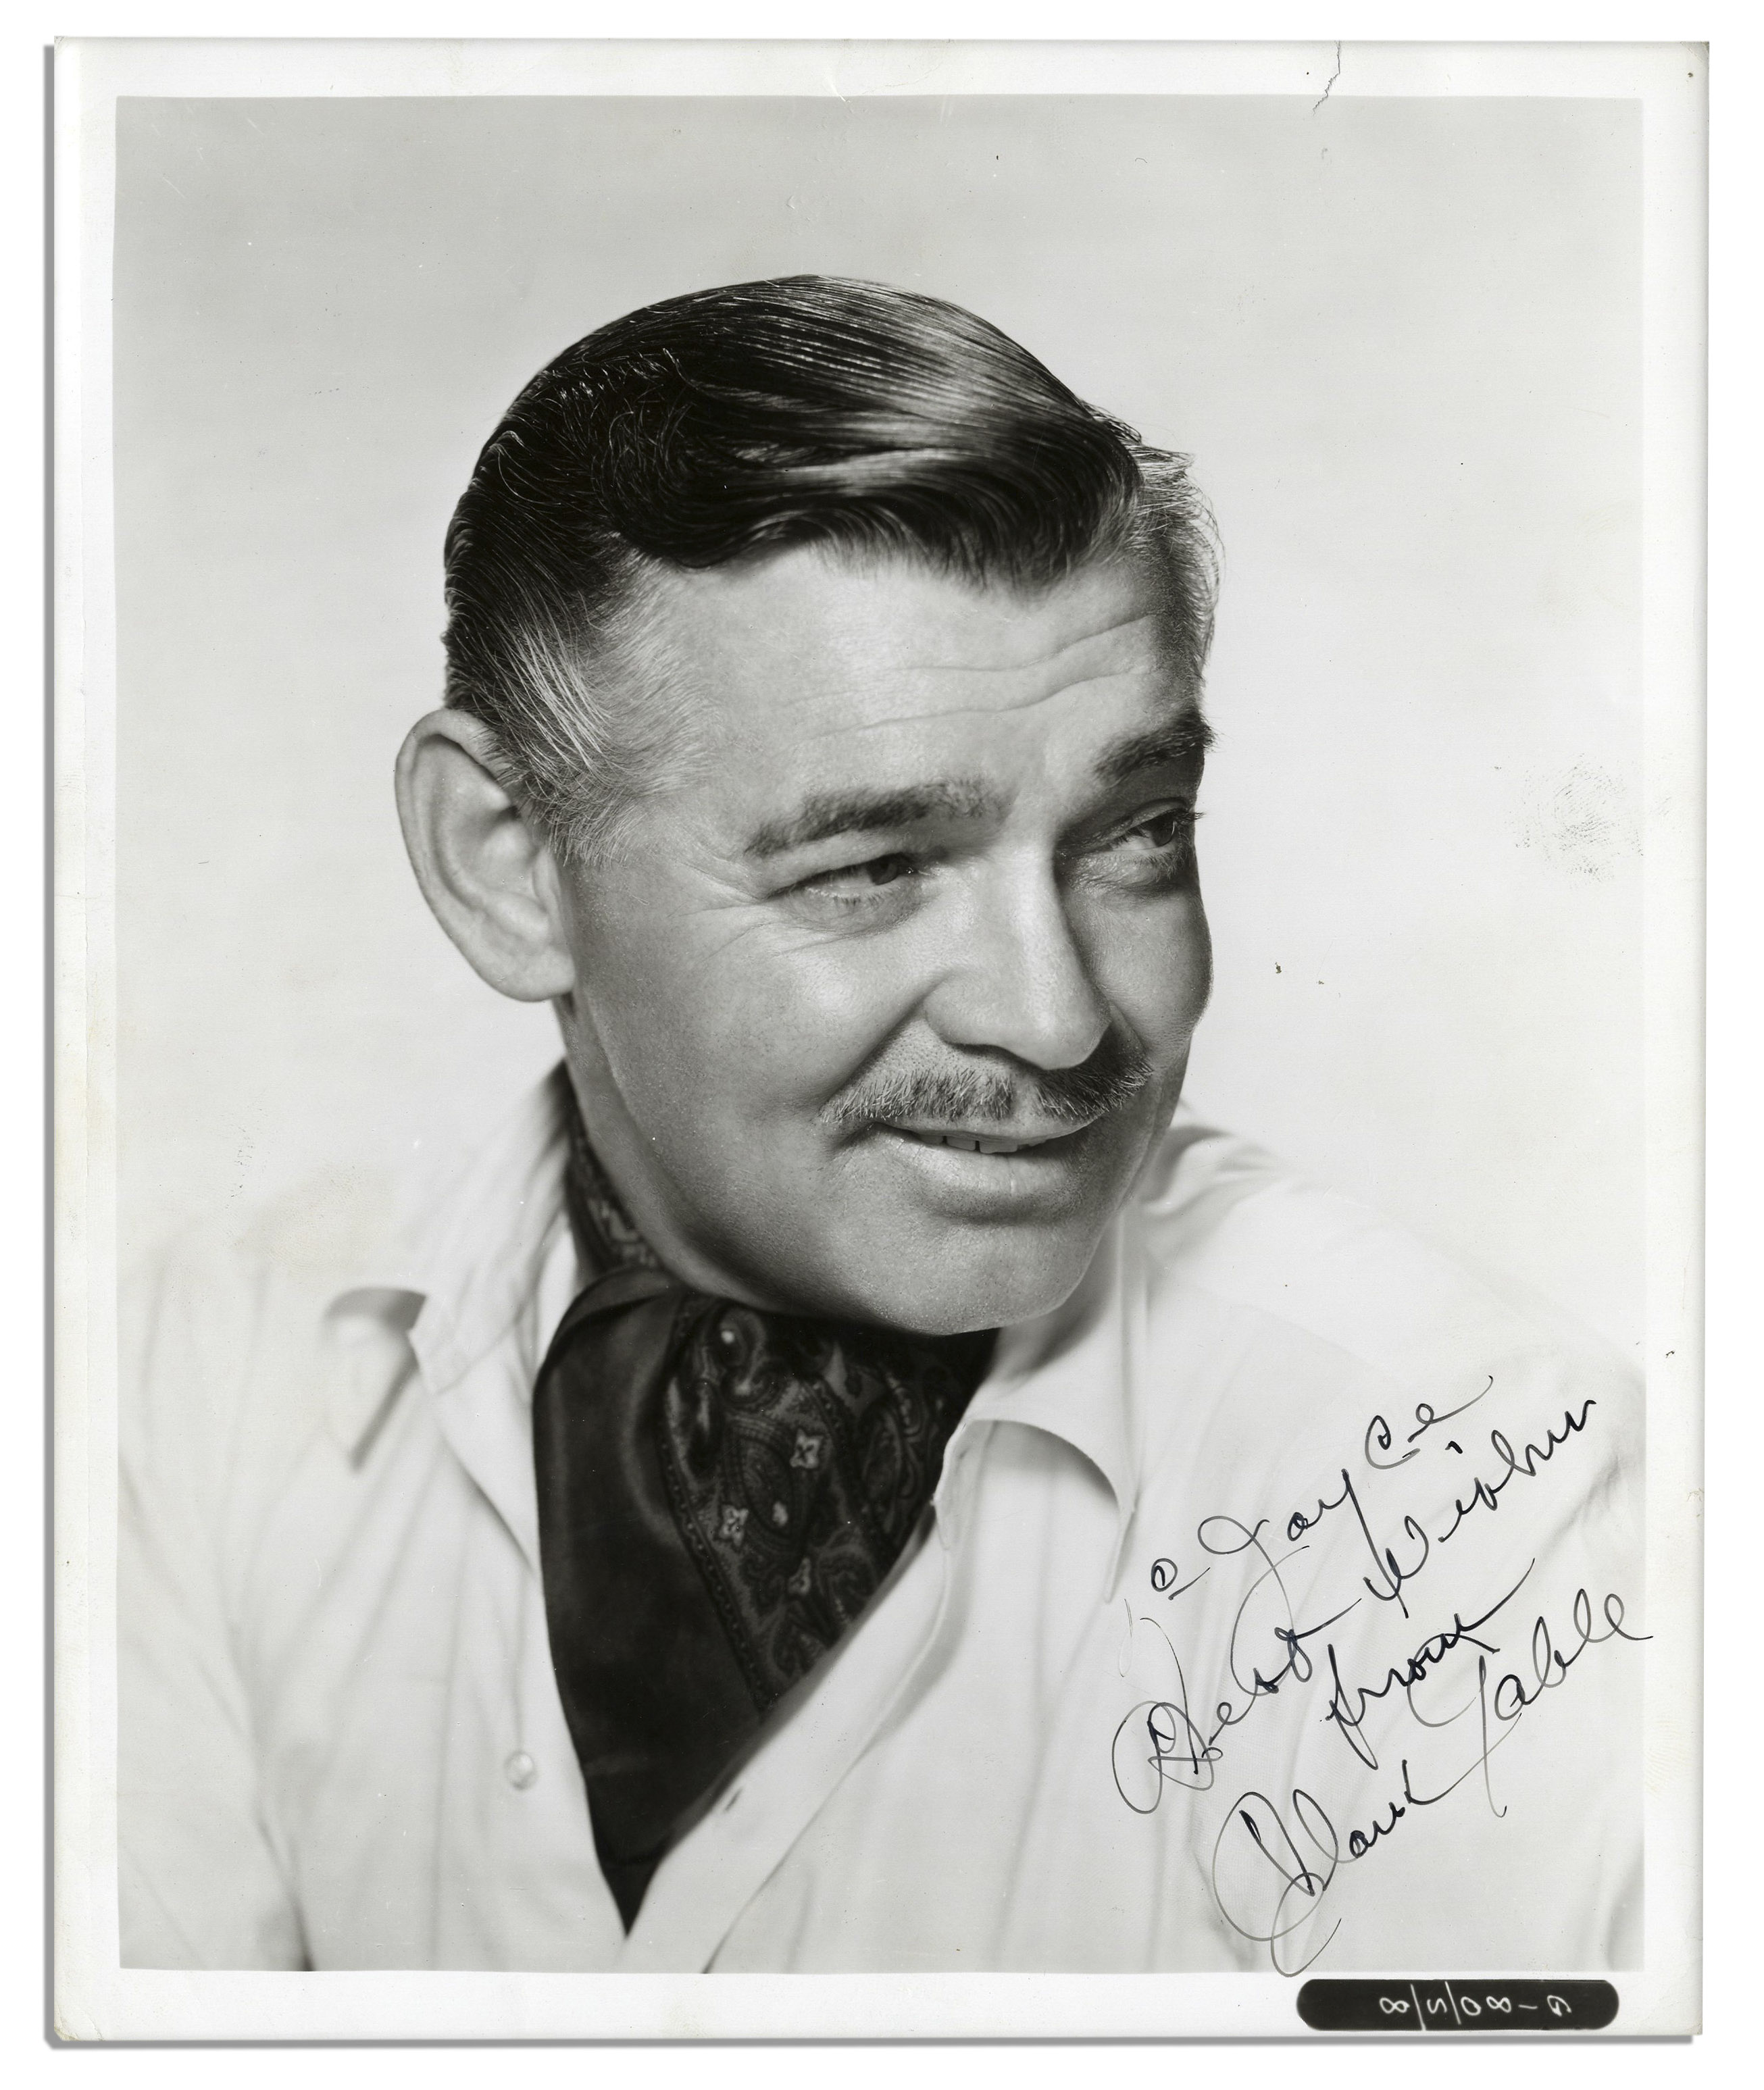 Clark gable 8 x 10 signed photo